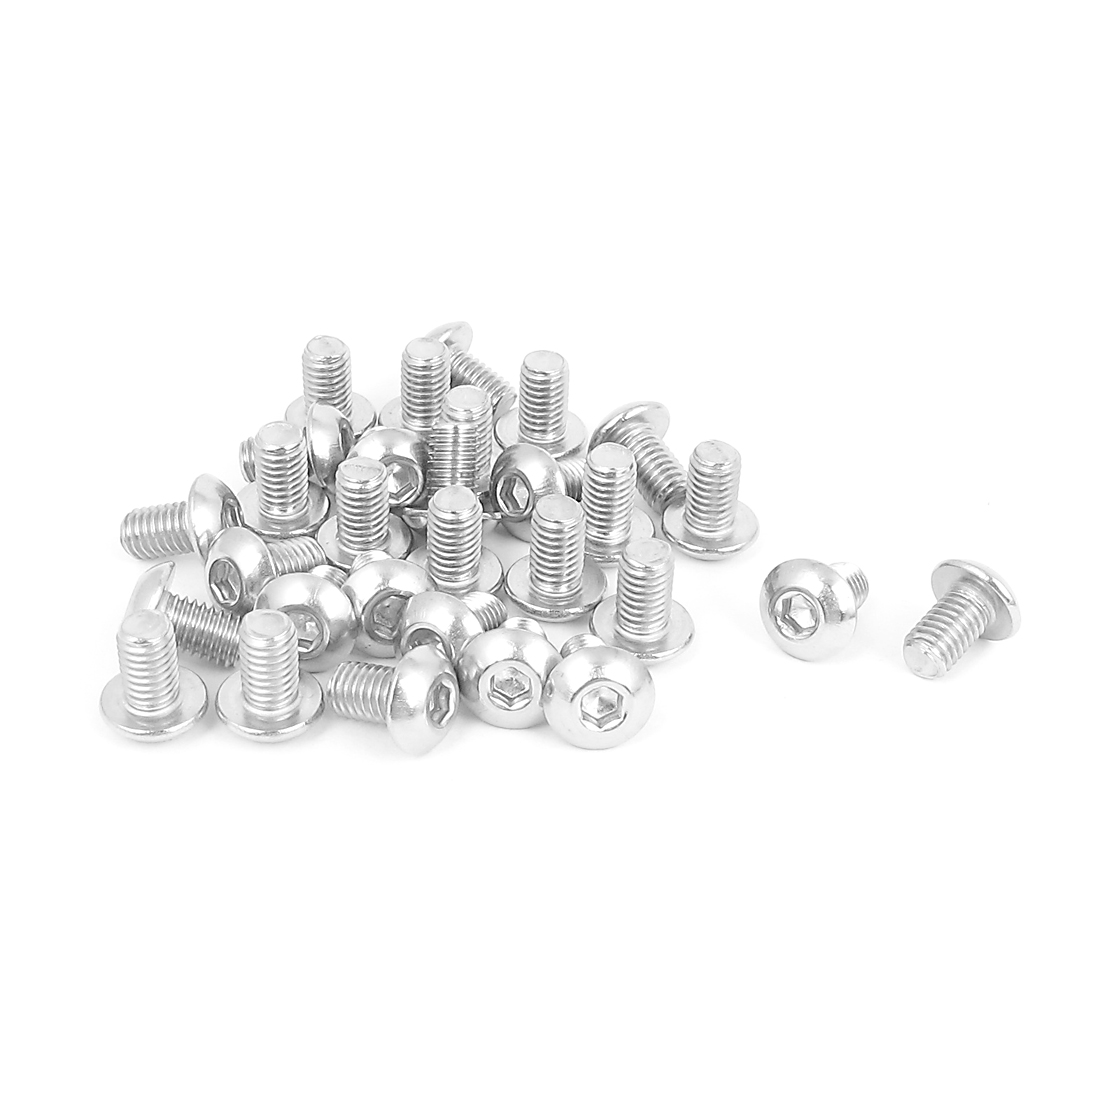 M5x8mm 304 Stainless Steel Hex Socket Machine Countersunk Round Head Screw Bolts 30PCS